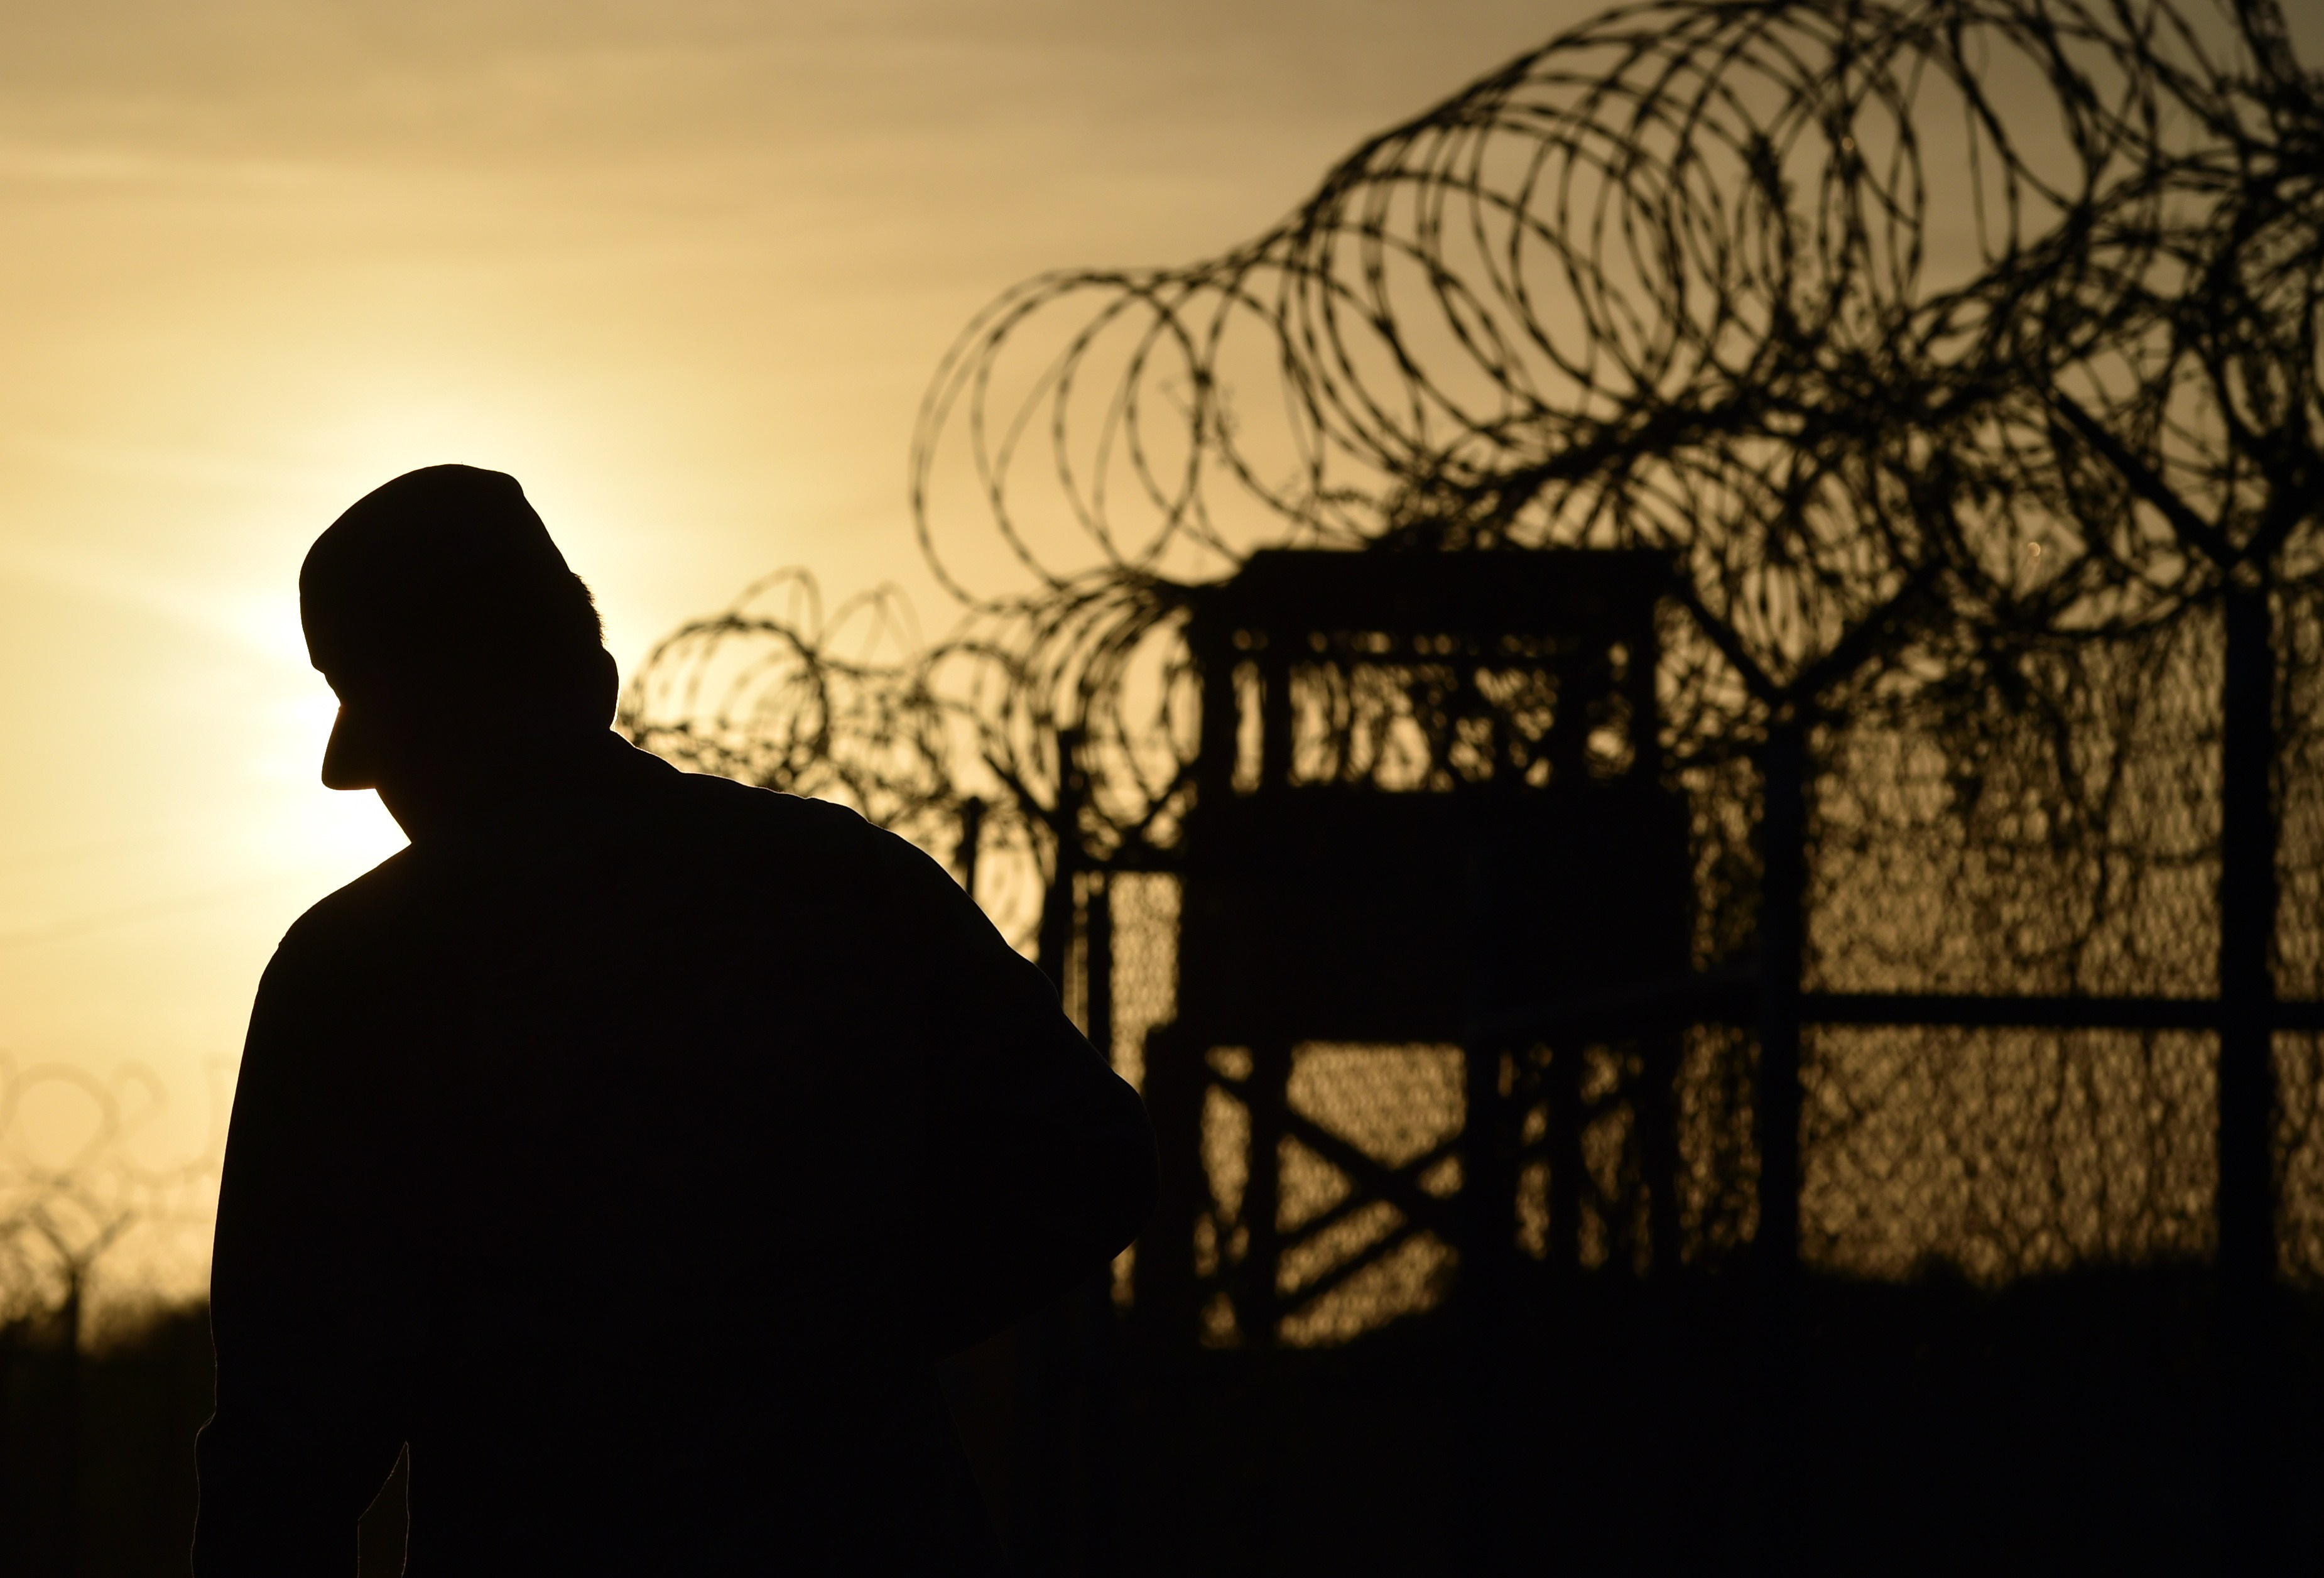 nor zed relations to have little effect on guantanamo nor zed relations to have little effect on guantanamo bay us news